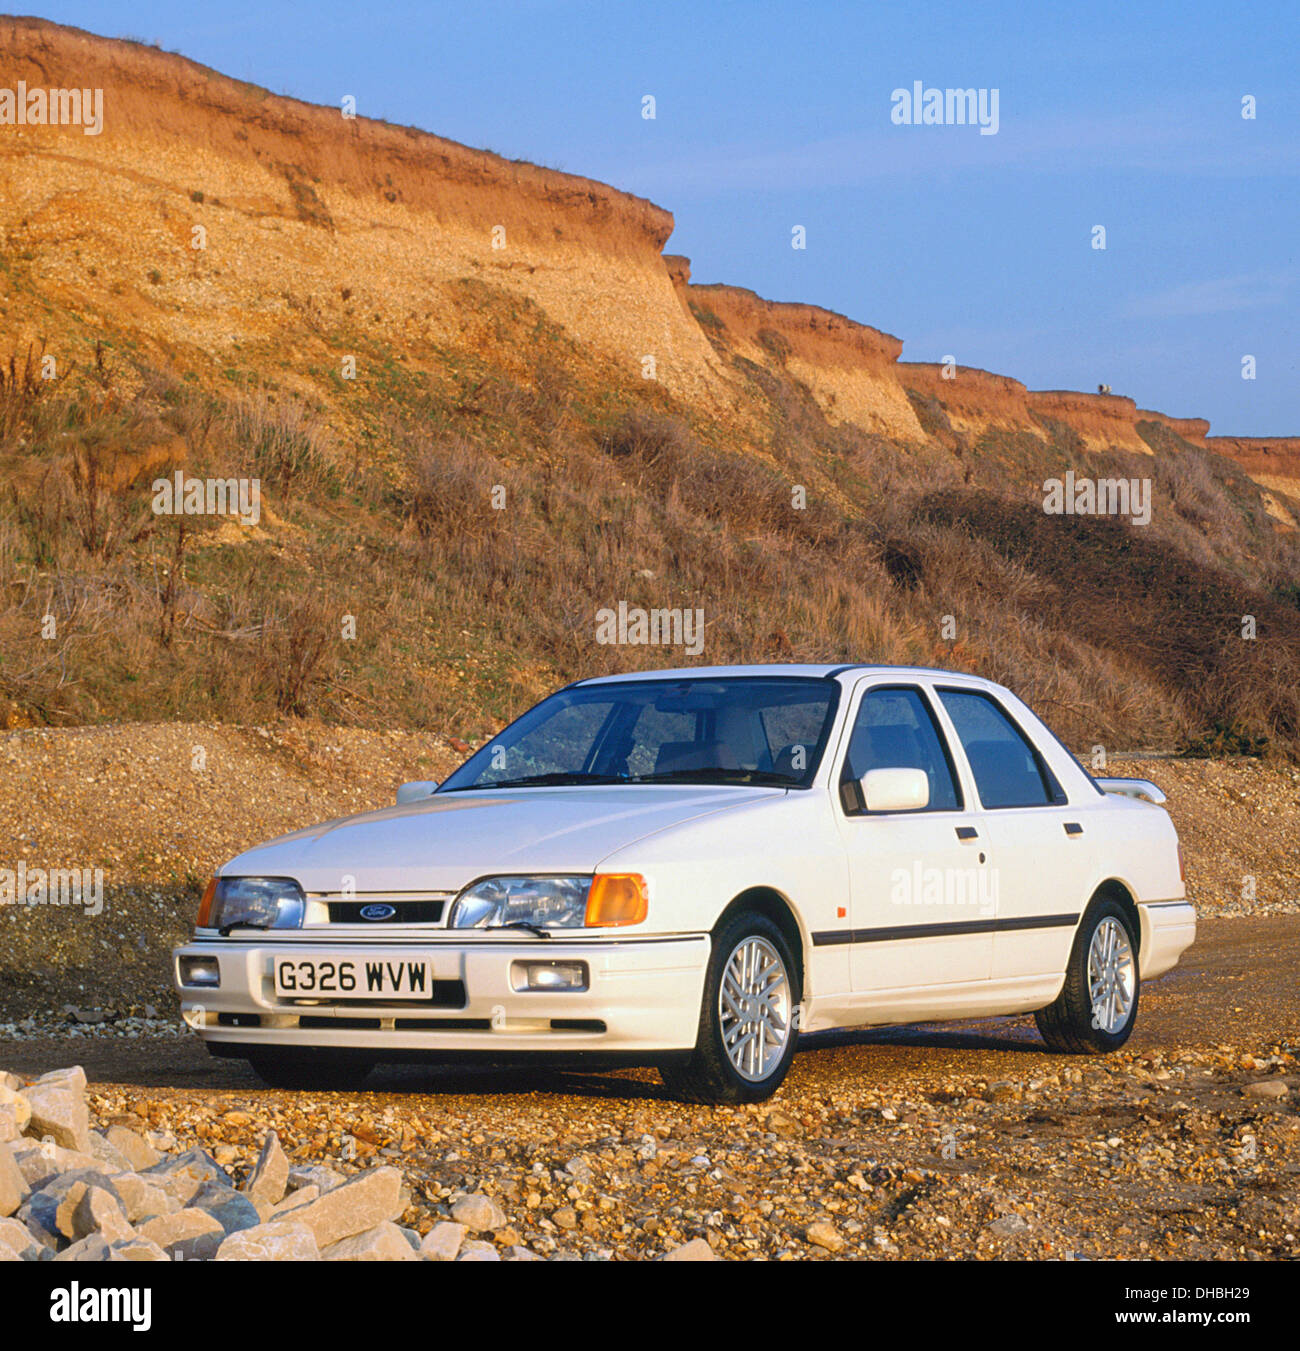 1989 Ford Sierra Sapphire RS Cosworth Imagen De Stock